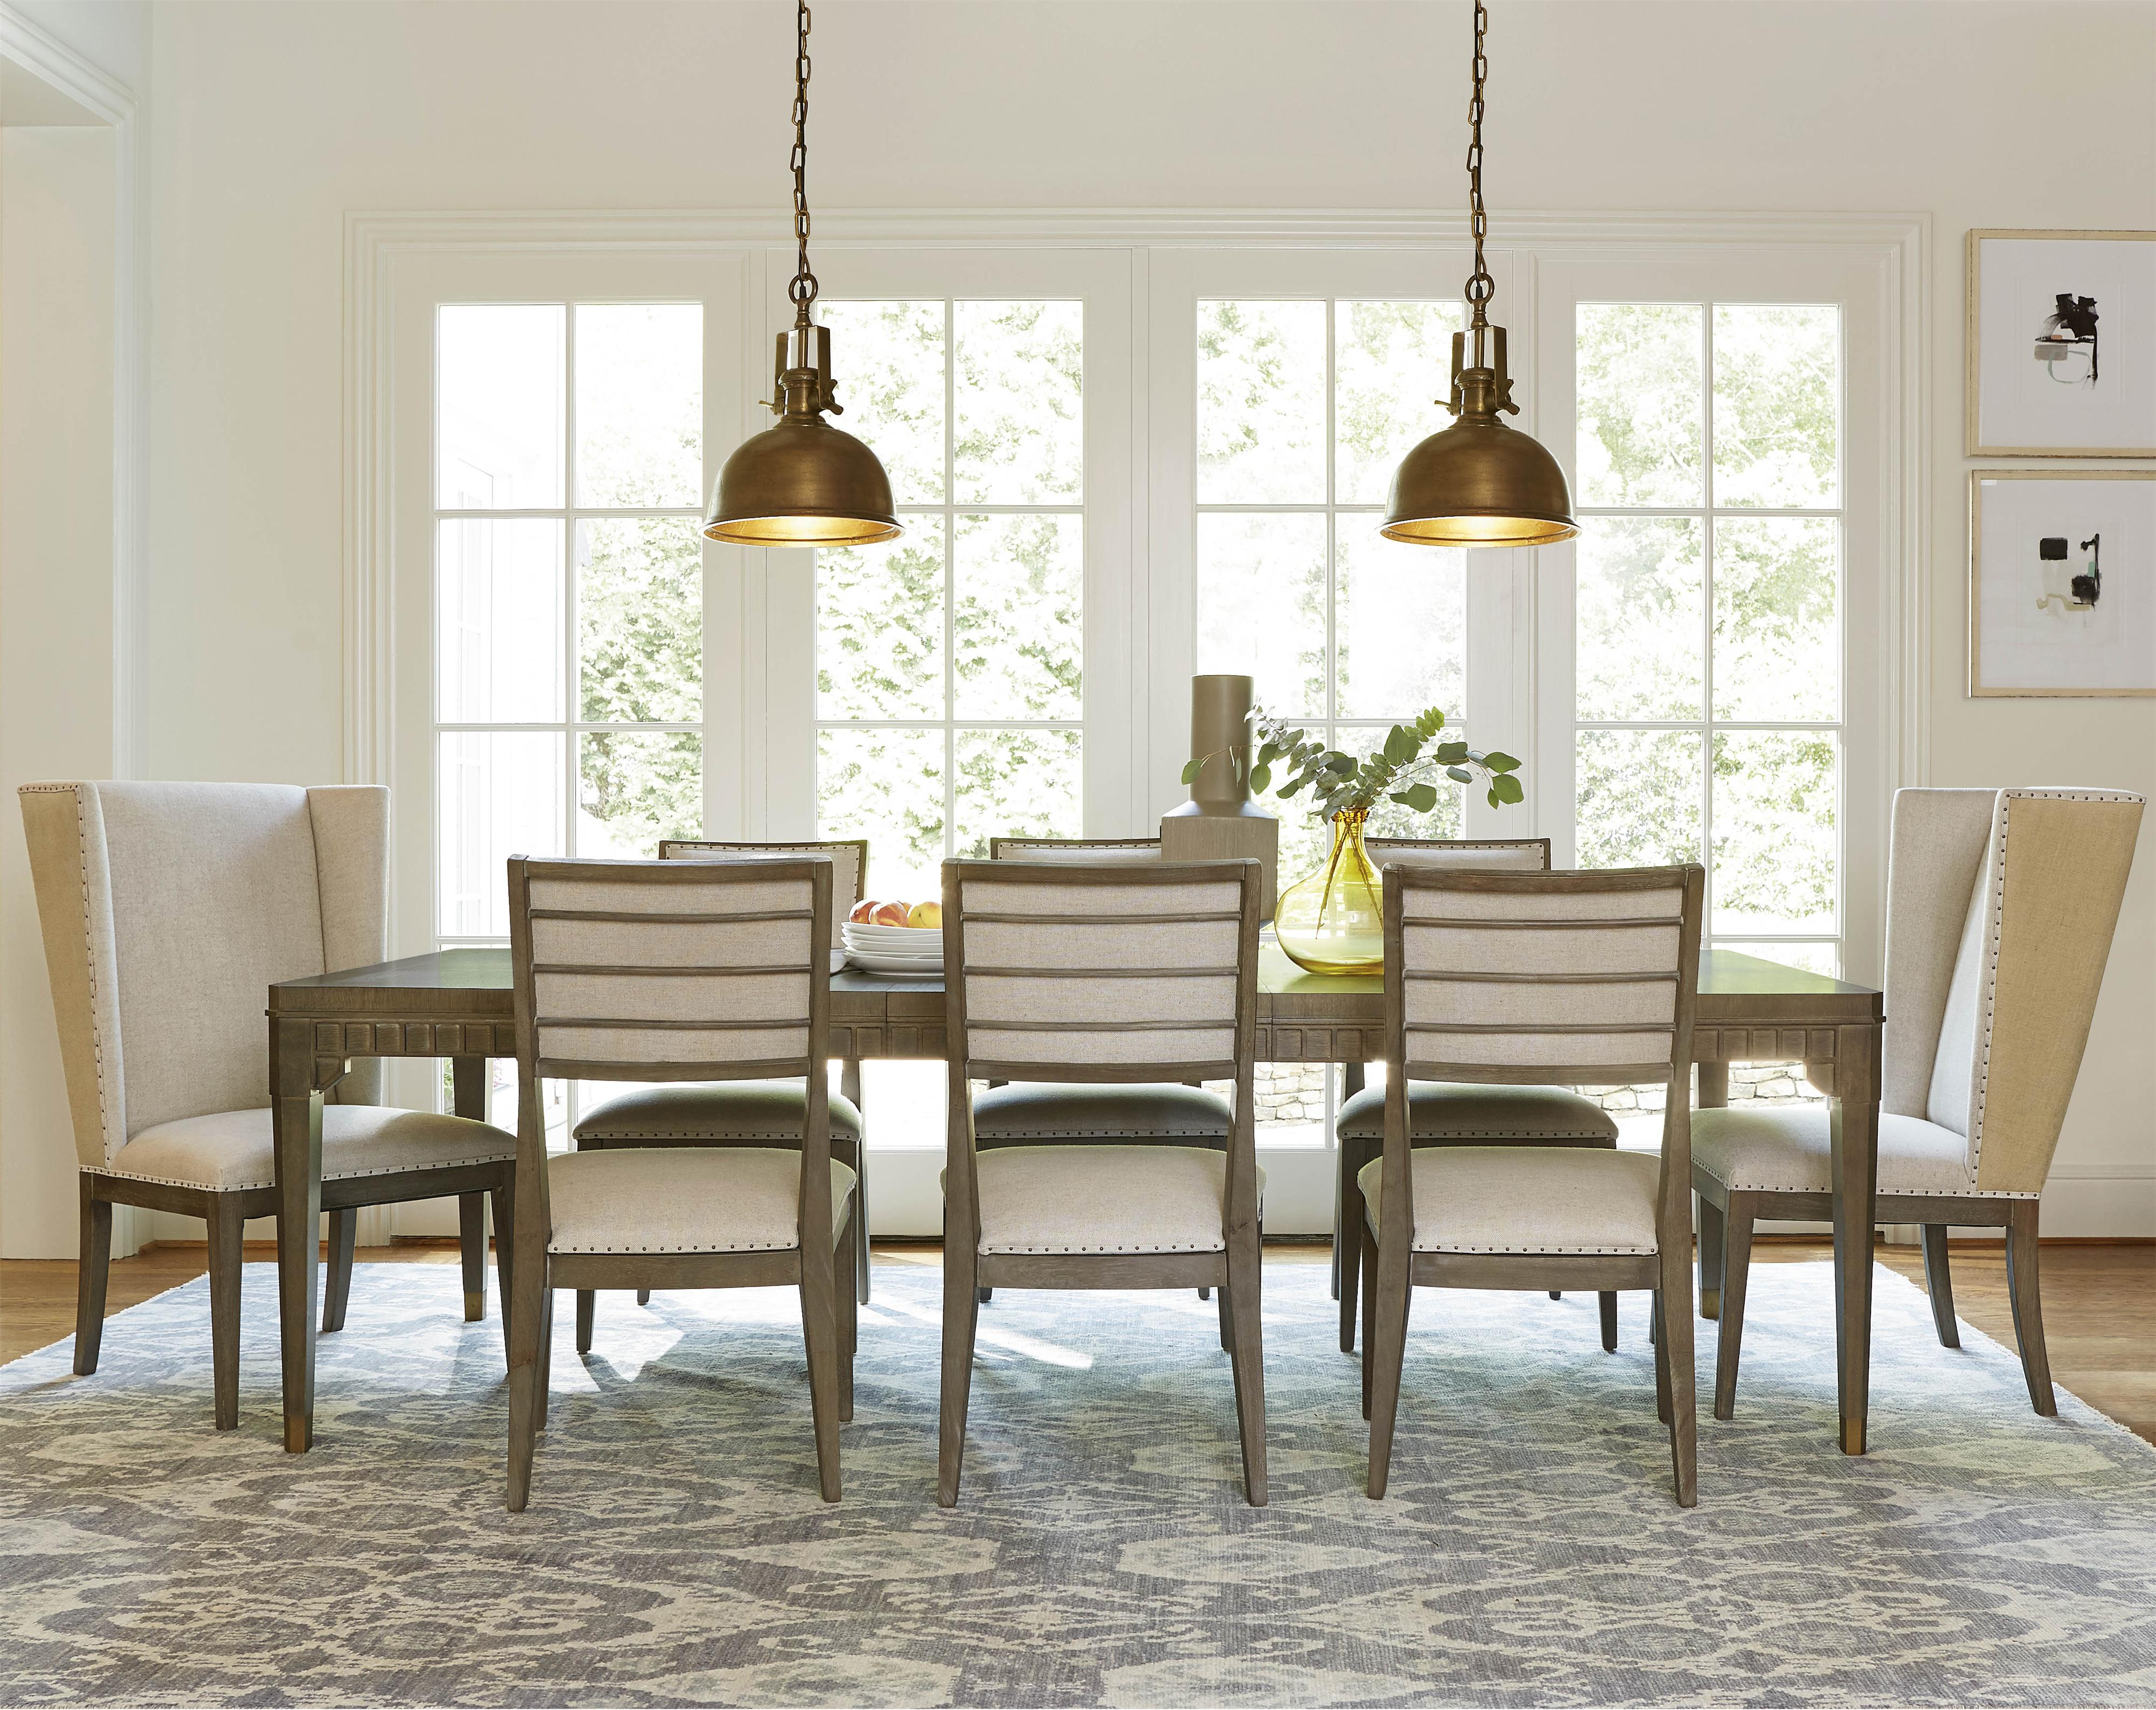 Universal furniture formal dining room sets - Universal Playlist 9 Piece Dining Set Item Number 507653 2x38 6x34